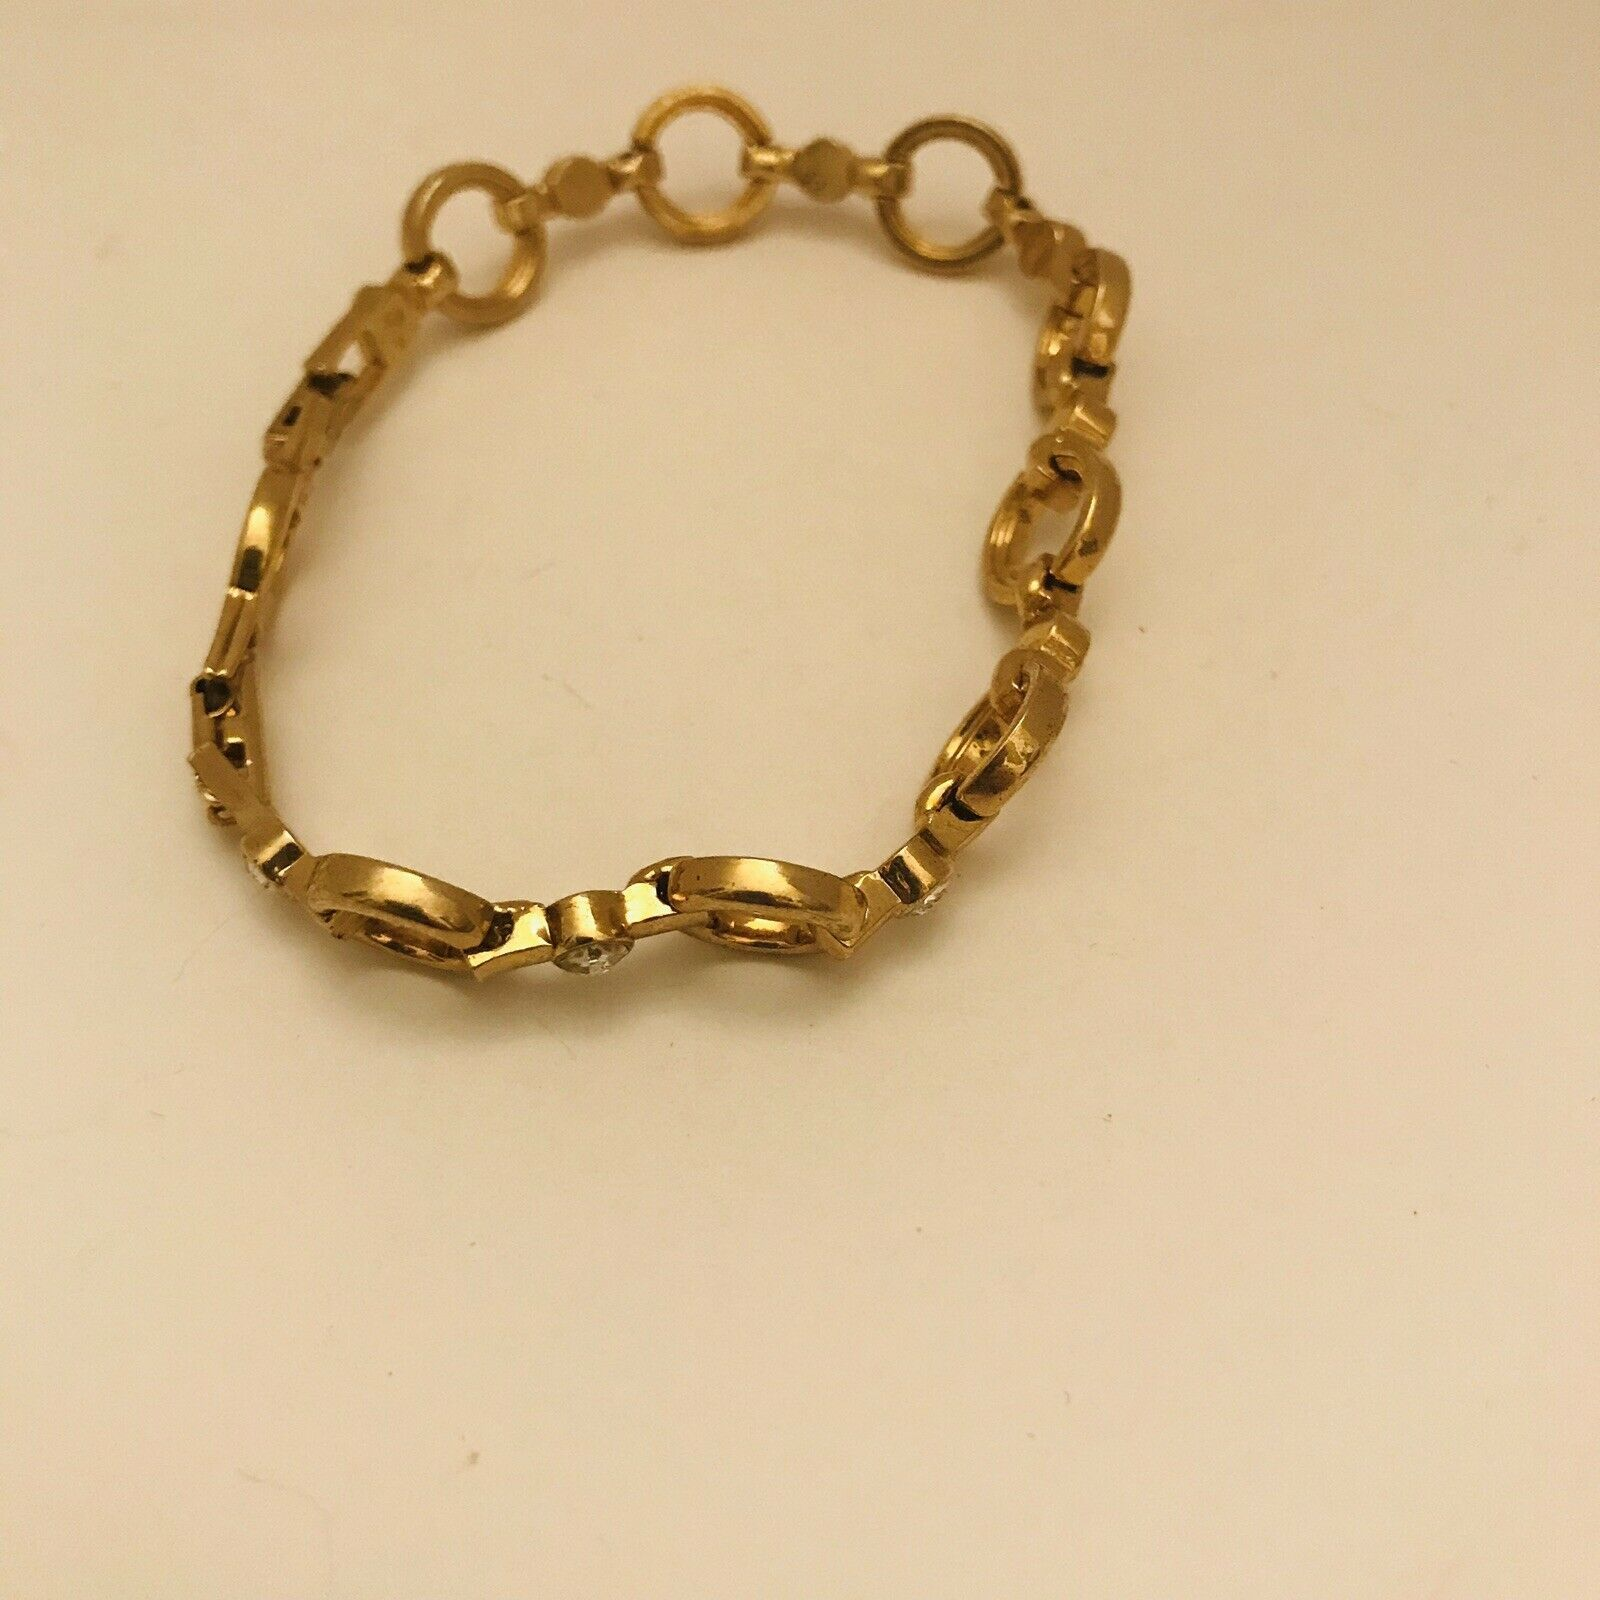 "Avon Sparkling Goldtone Circle Link 7"" -8"" Adjustable Tennis Bracelet J0727 image 3"